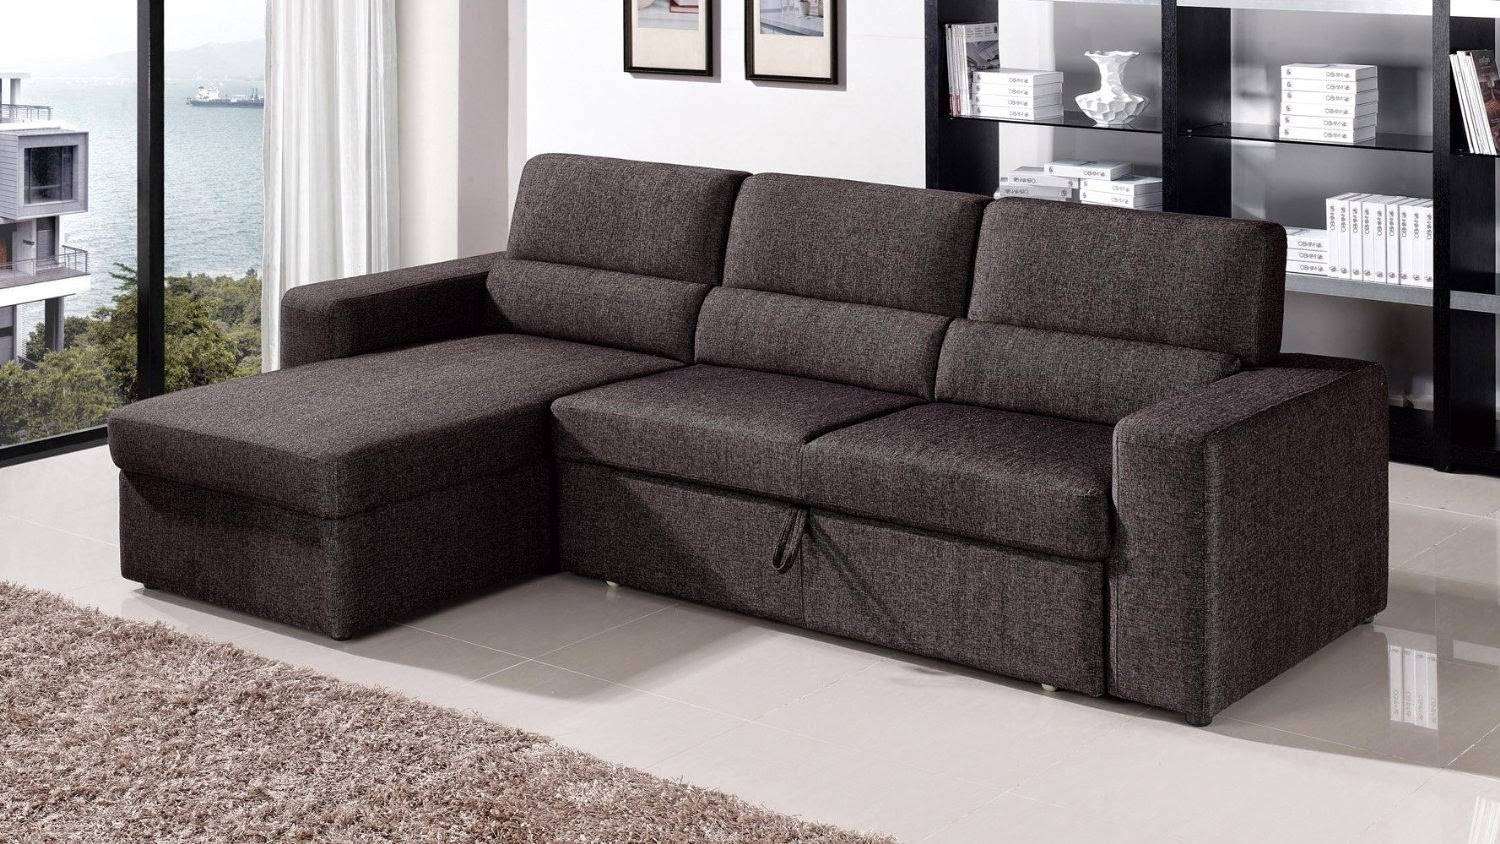 Sofas Center : Cheap Hide Queen Size Pull Out Sofa Ddns Pexcel pertaining to Pull Out Queen Size Bed Sofas (Image 23 of 30)